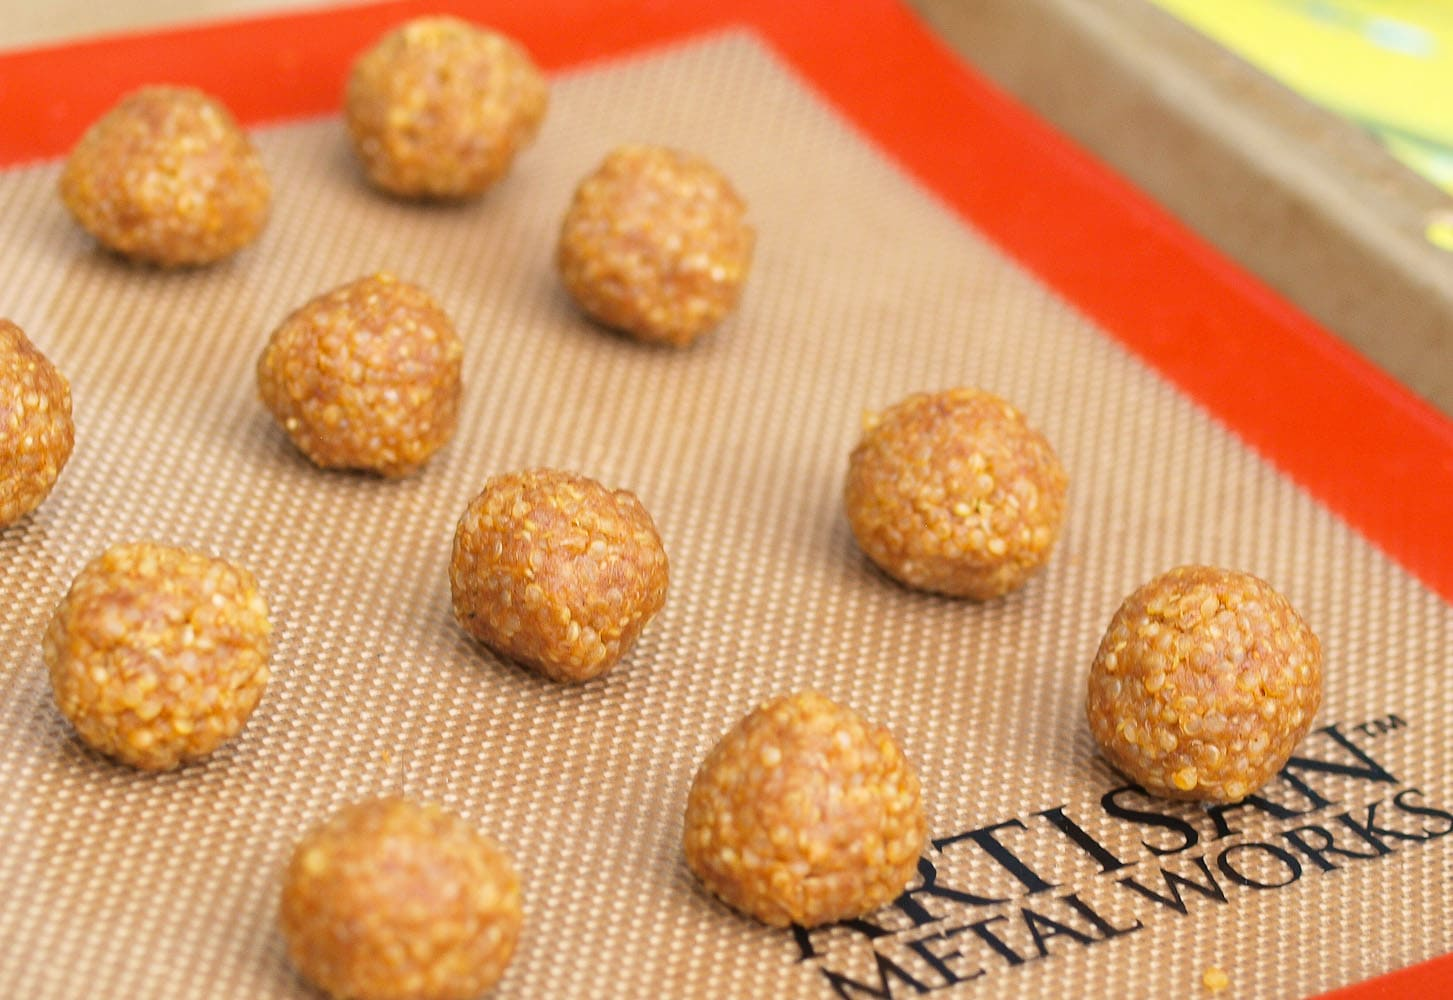 These Quinoa Peanut Butter Snack Balls are easy to make with only 4 ingredients. This is a vegan and gluten-free snack recipe. If your kids won't eat quinoa, give this recipe a try and you might change their mind!